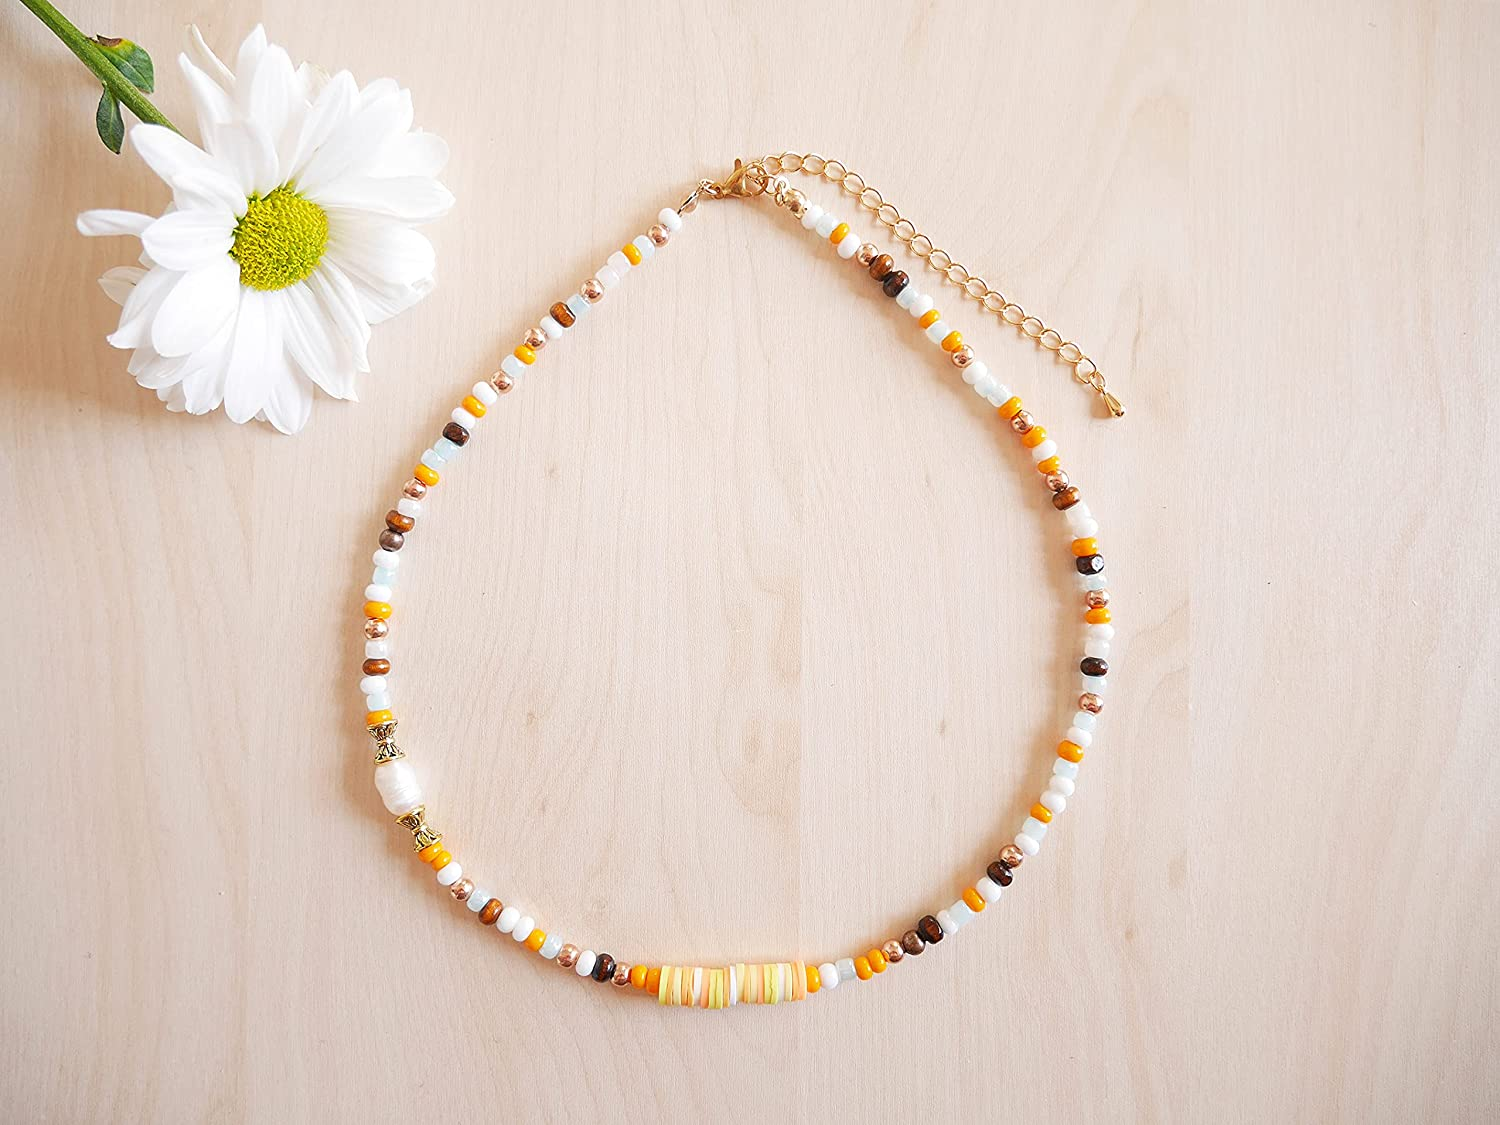 Beaded summer necklace - tropical with glass colorful Low price Choice